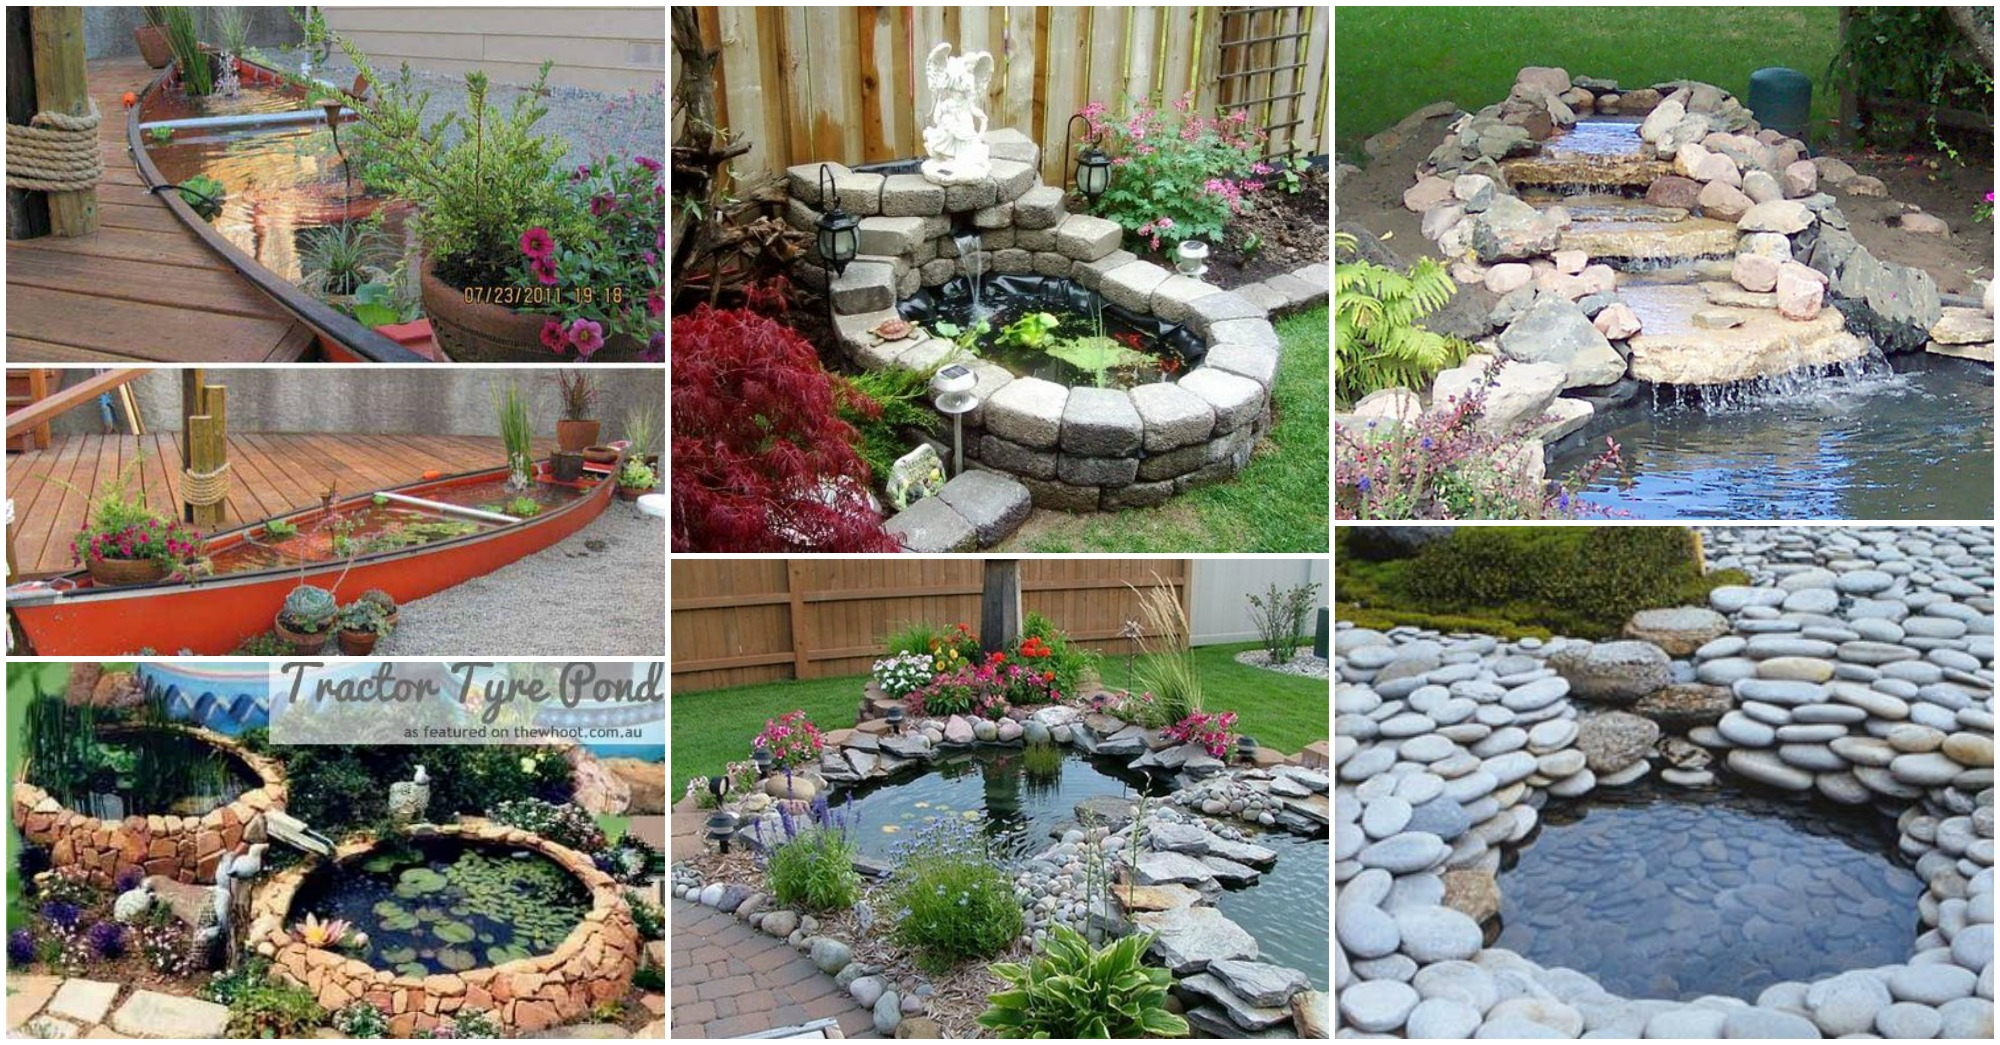 20 Diy Backyard Pond Ideas On A Budget That You Will Love regarding 10 Genius Designs of How to Make Ponds Ideas Backyard